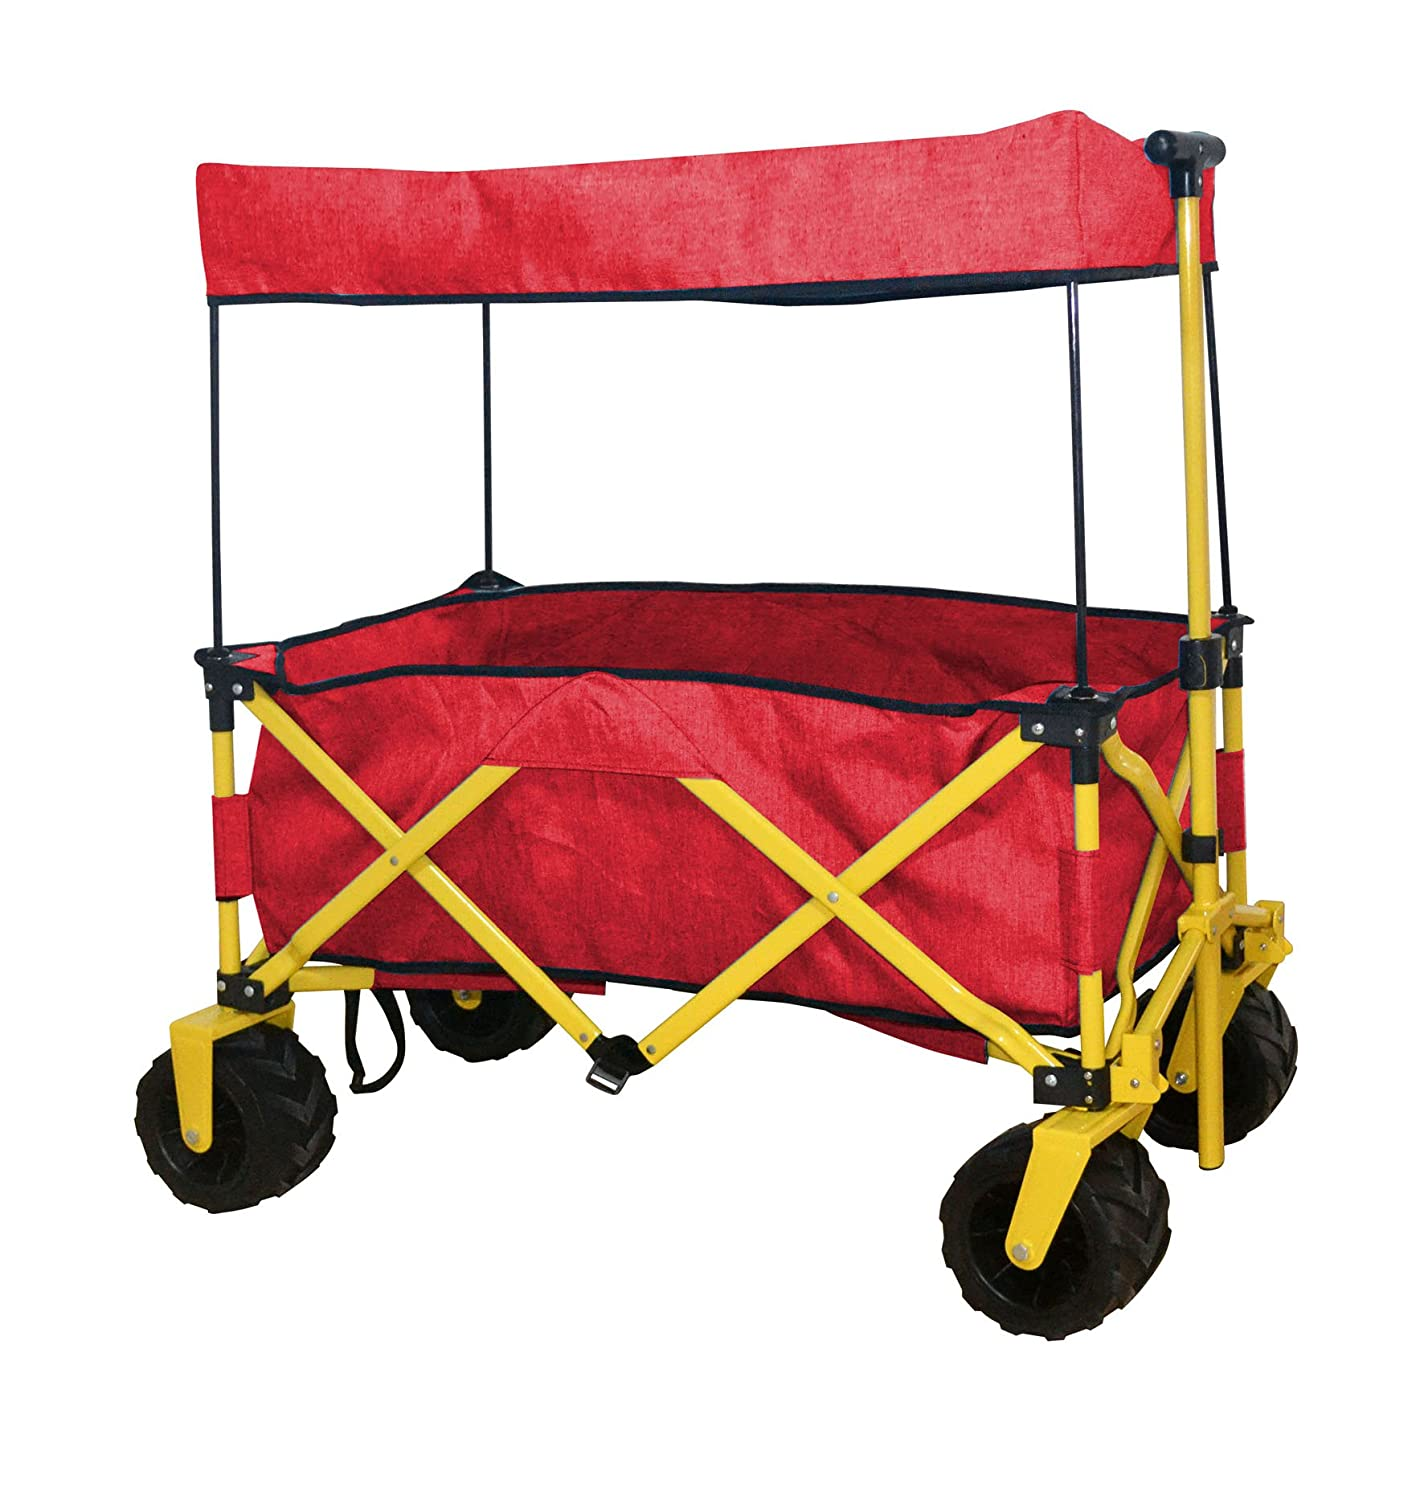 WagonBuddy Compact Folded Jumbo Wheel RED Folding Wagon All Purpose Garden Utility Beach Shopping Travel CART Outdoor Sport Collapsible with Canopy Cover – Easy Setup NO Tool Necessary – Space Saver